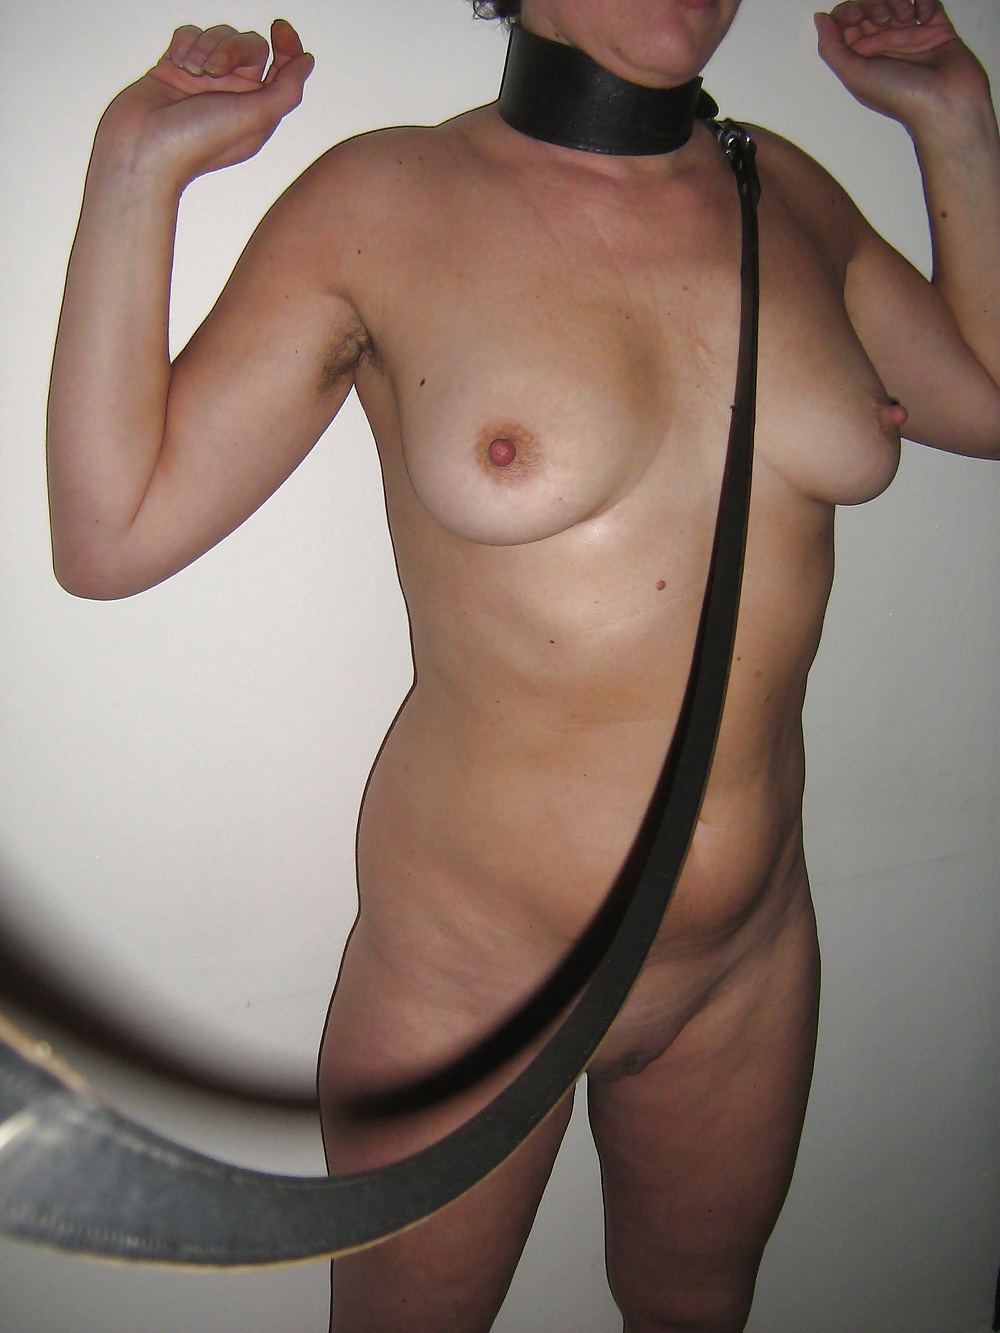 on a leash porn pictures